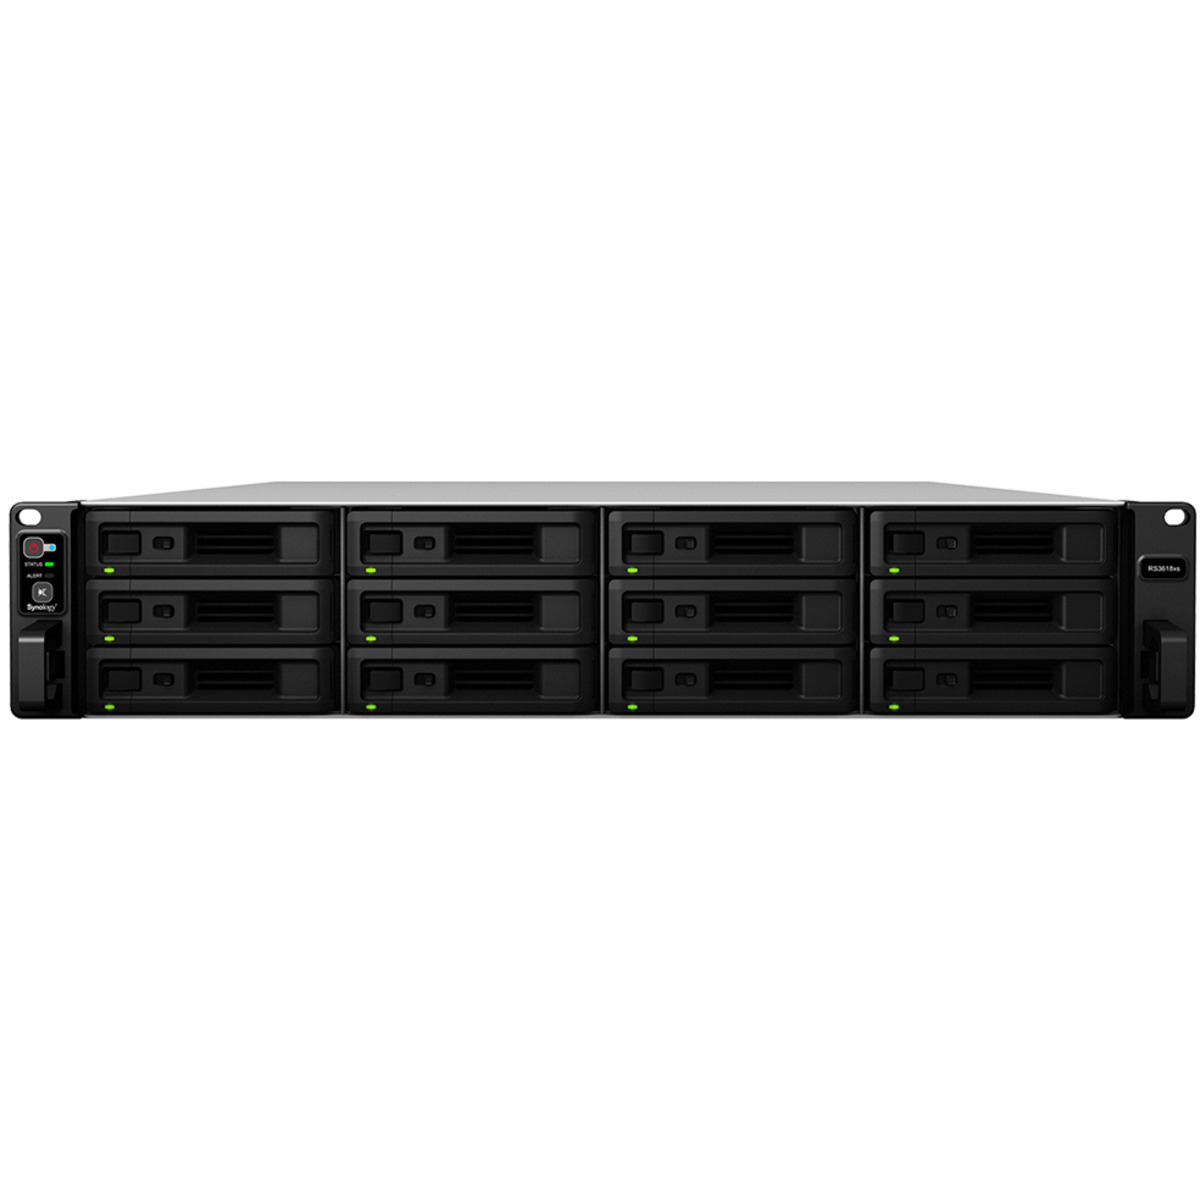 buy $5718 Synology RackStation RS3618xs 66tb RackMount NAS - Network Attached Storage Device 11x6000gb Seagate IronWolf Pro ST6000NE000 3.5 7200rpm SATA 6Gb/s HDD NAS Class Drives Installed - Burn-In Tested - nas headquarters buy network attached storage server device das new raid-5 free shipping usa inventory clearance sale happening now RackStation RS3618xs